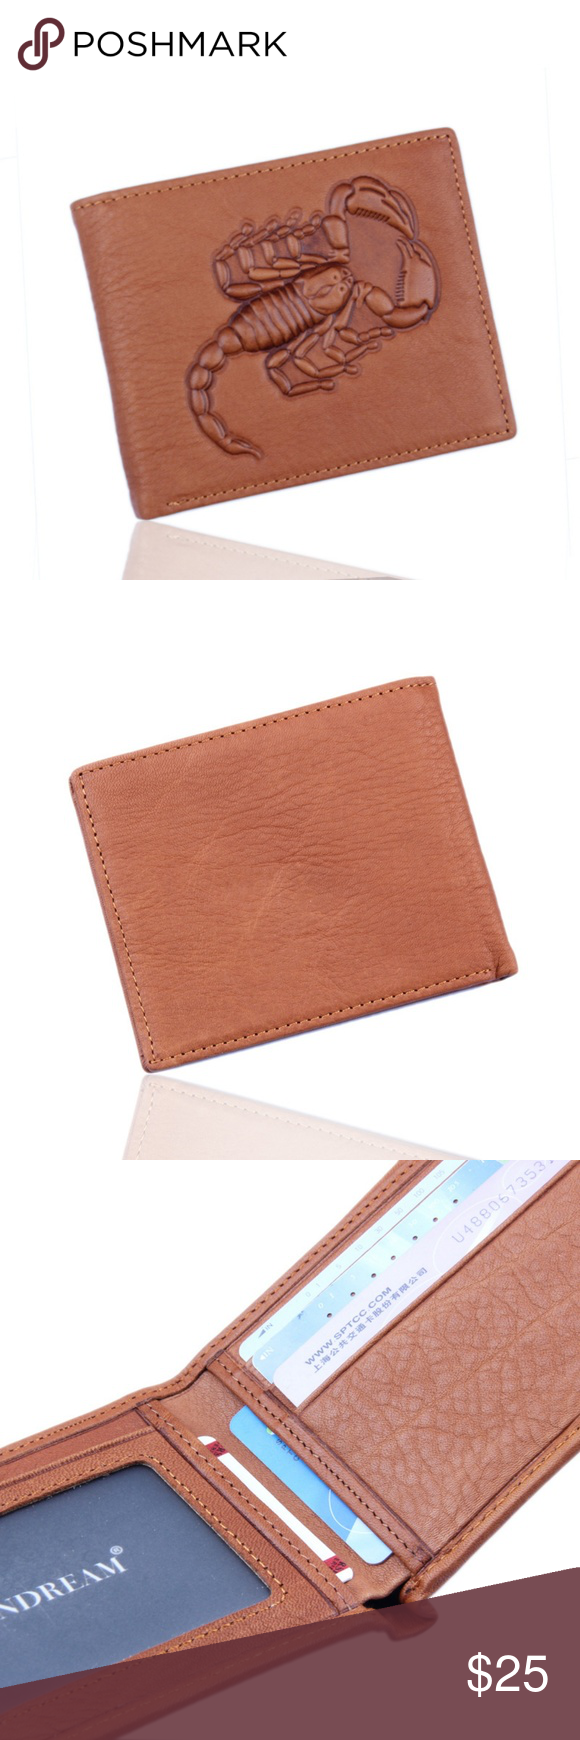 82ec13a0aeaf Scorpion Leather Bifold Wallet for Men Fashion Cool Cute Designed ...